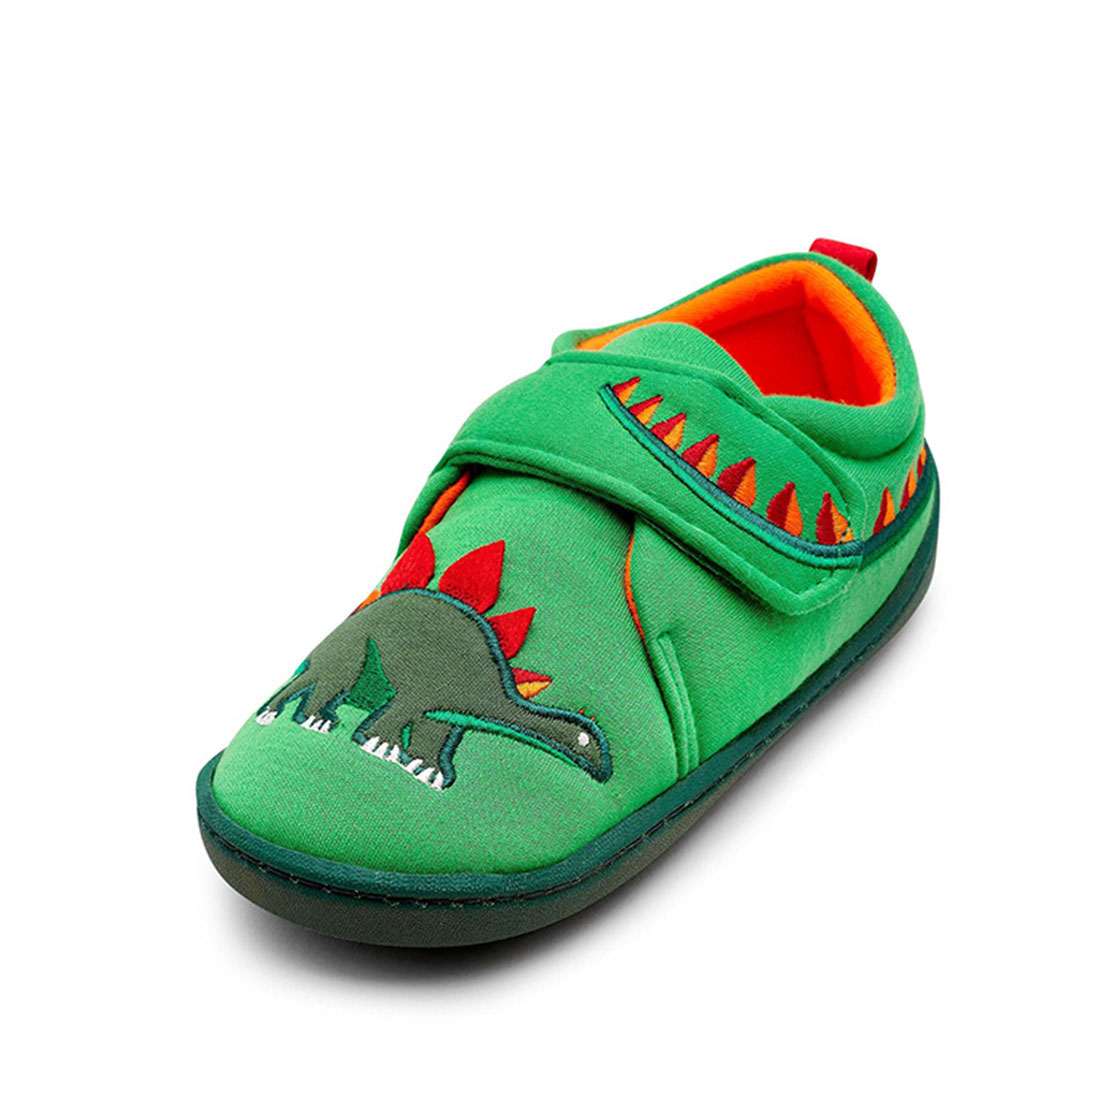 Fabric green flat fashion lovely design dinosaurs embroider toddler shoes